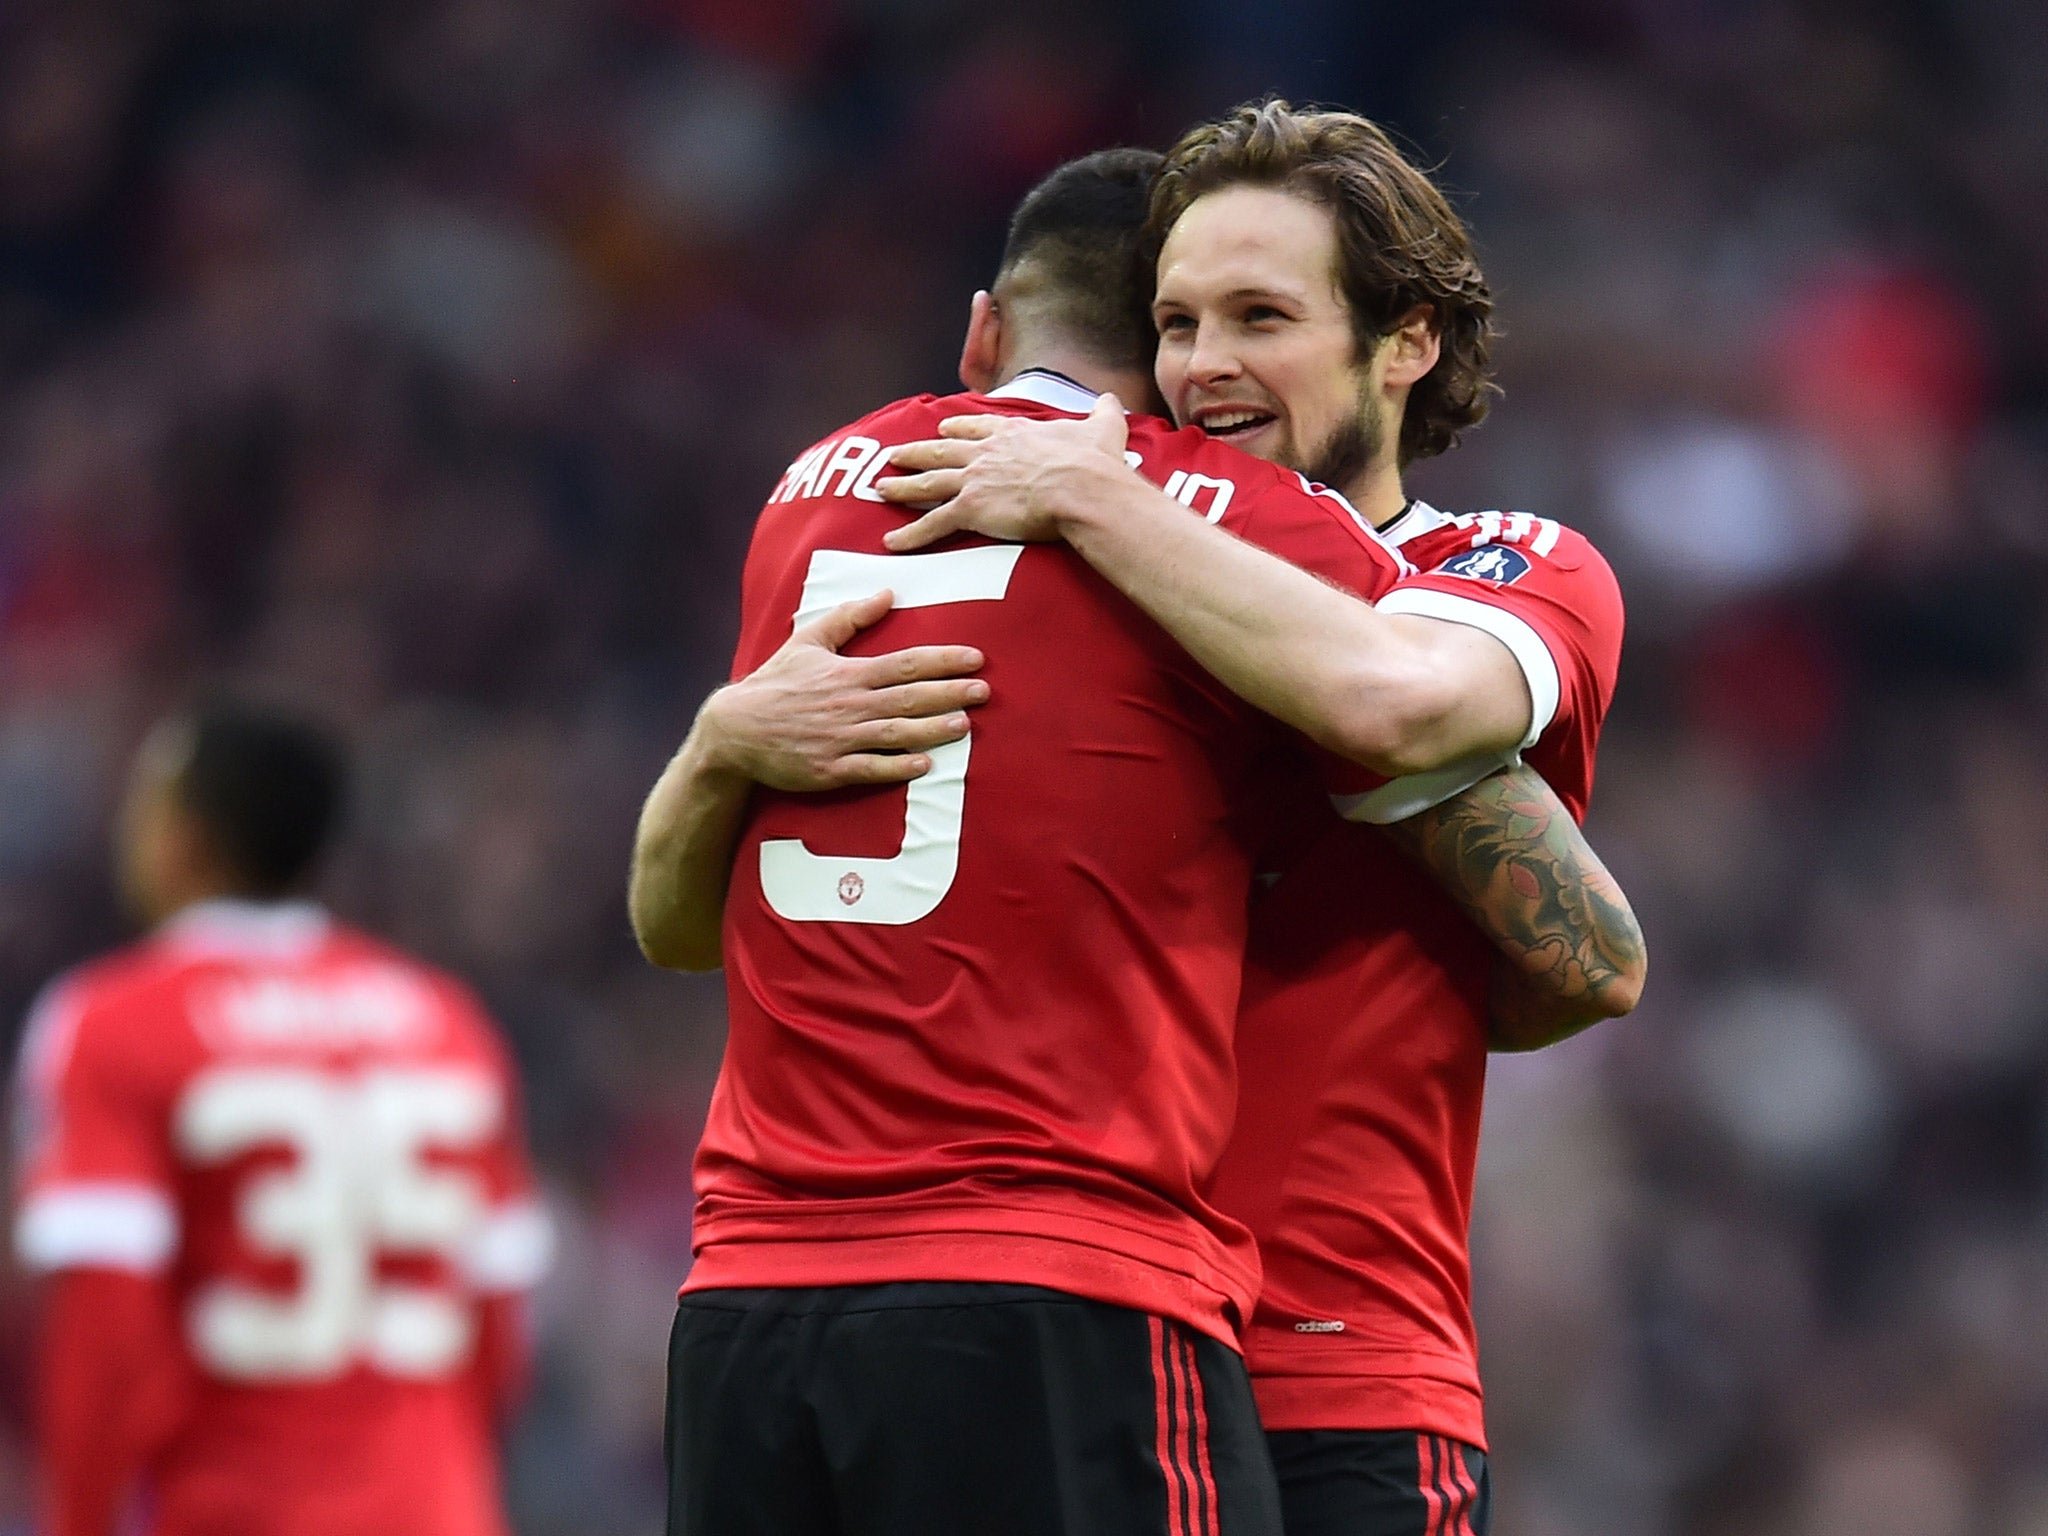 Manchester United 2 Everton 1 Daley Blind delighted as United